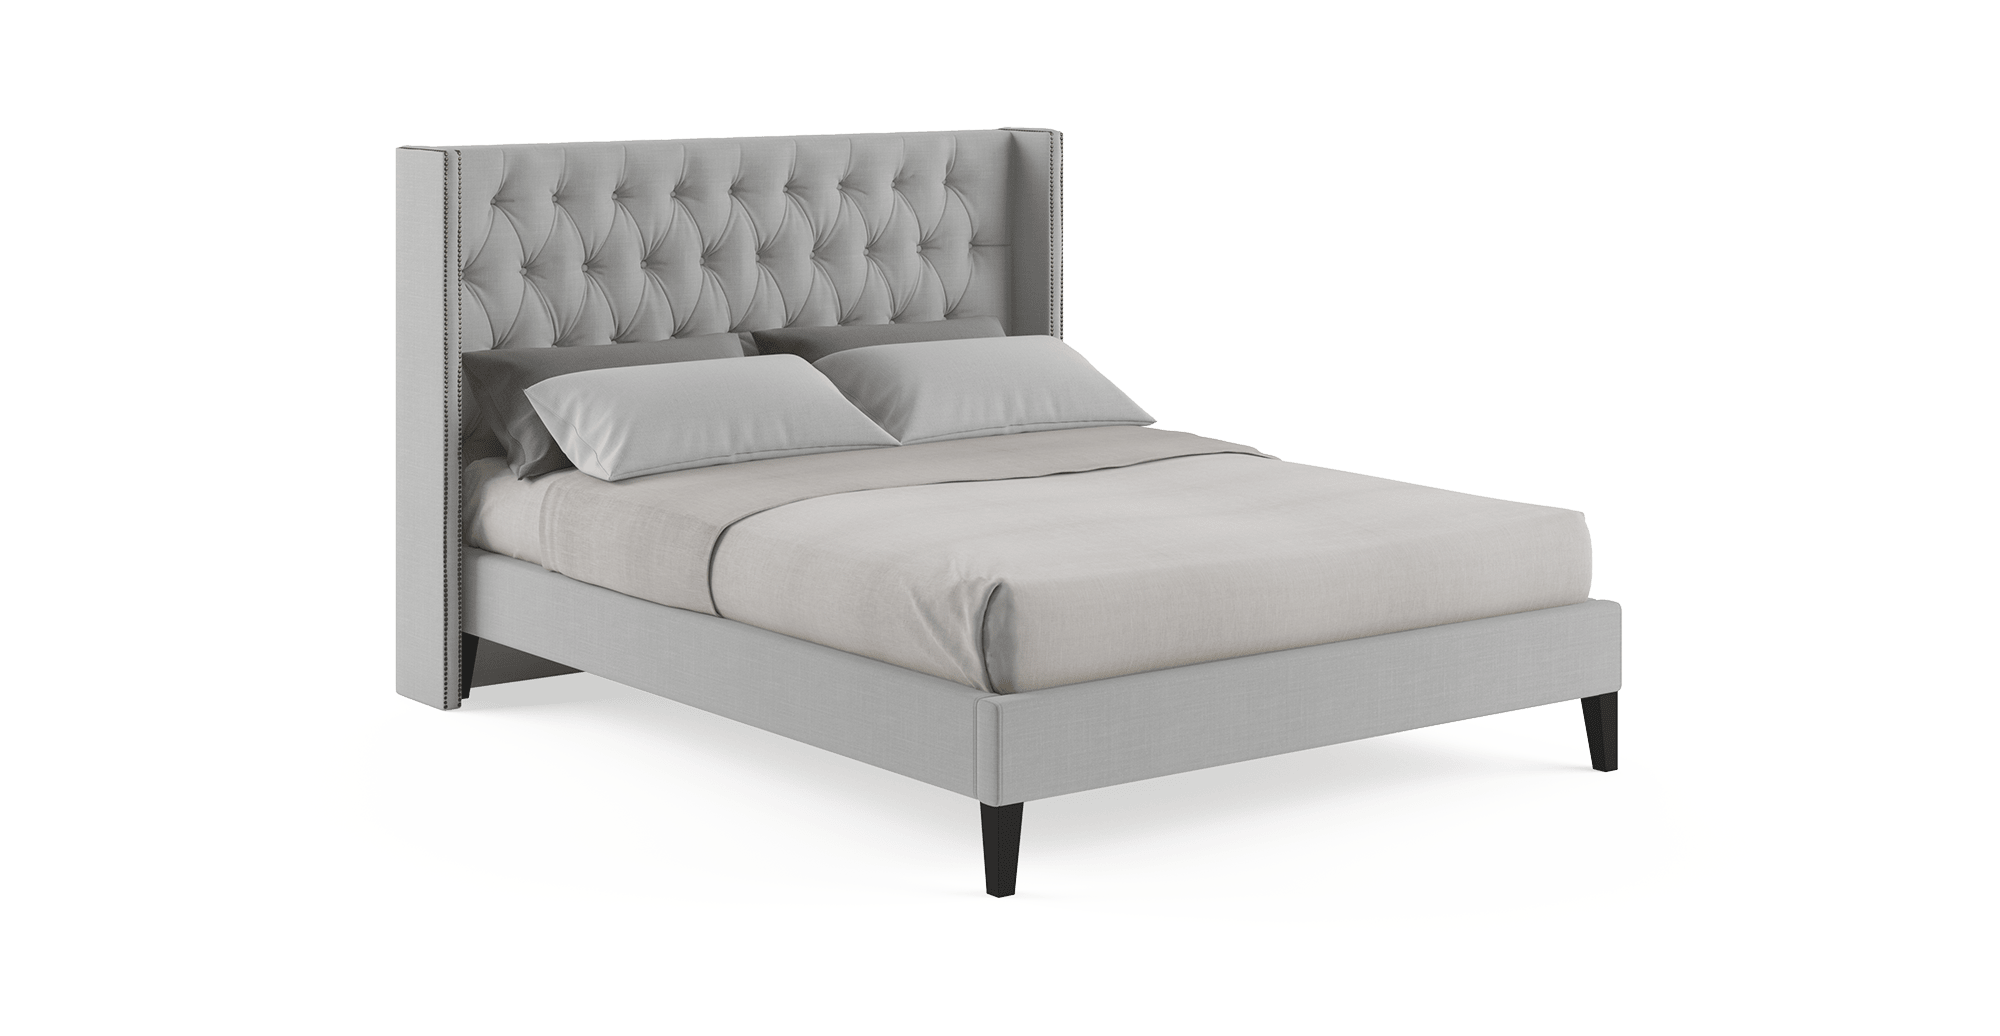 Buy Stella Queen Size Bed Frame Online in Australia